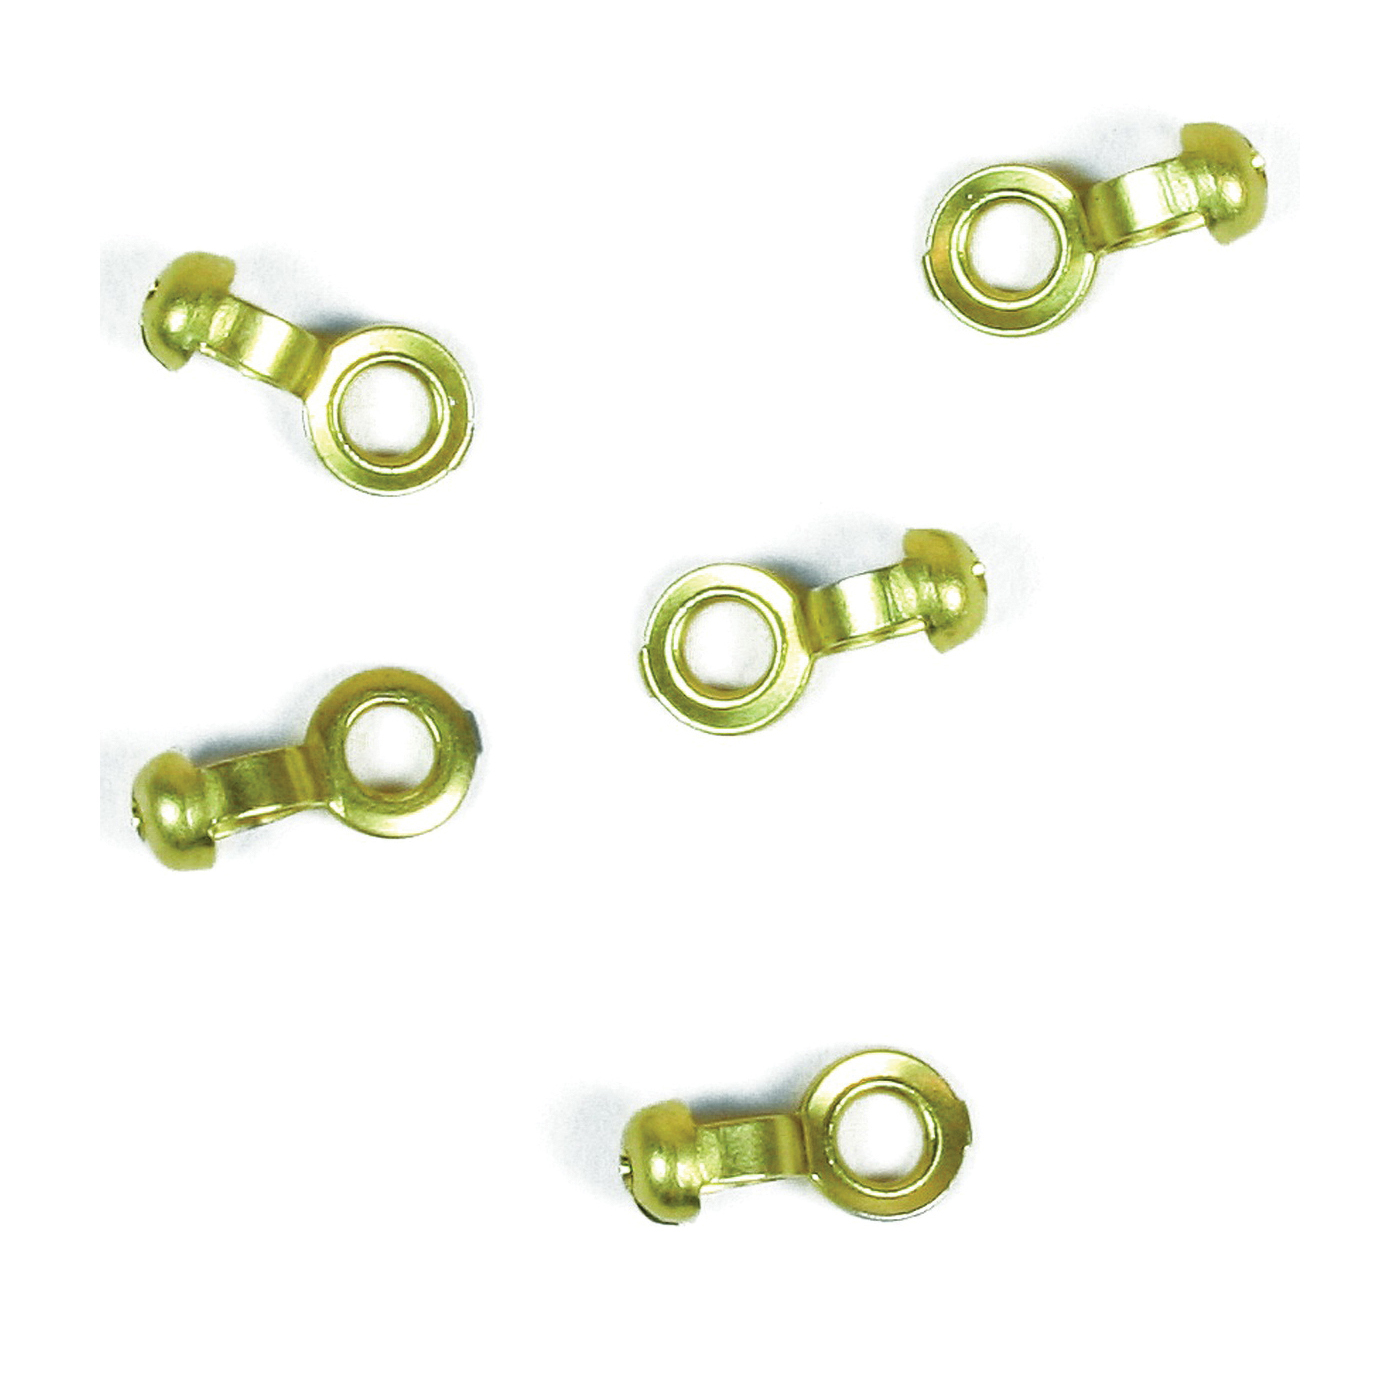 Picture of Jandorf 60356 Pull Chain Coupling, #6 Chain, Brass